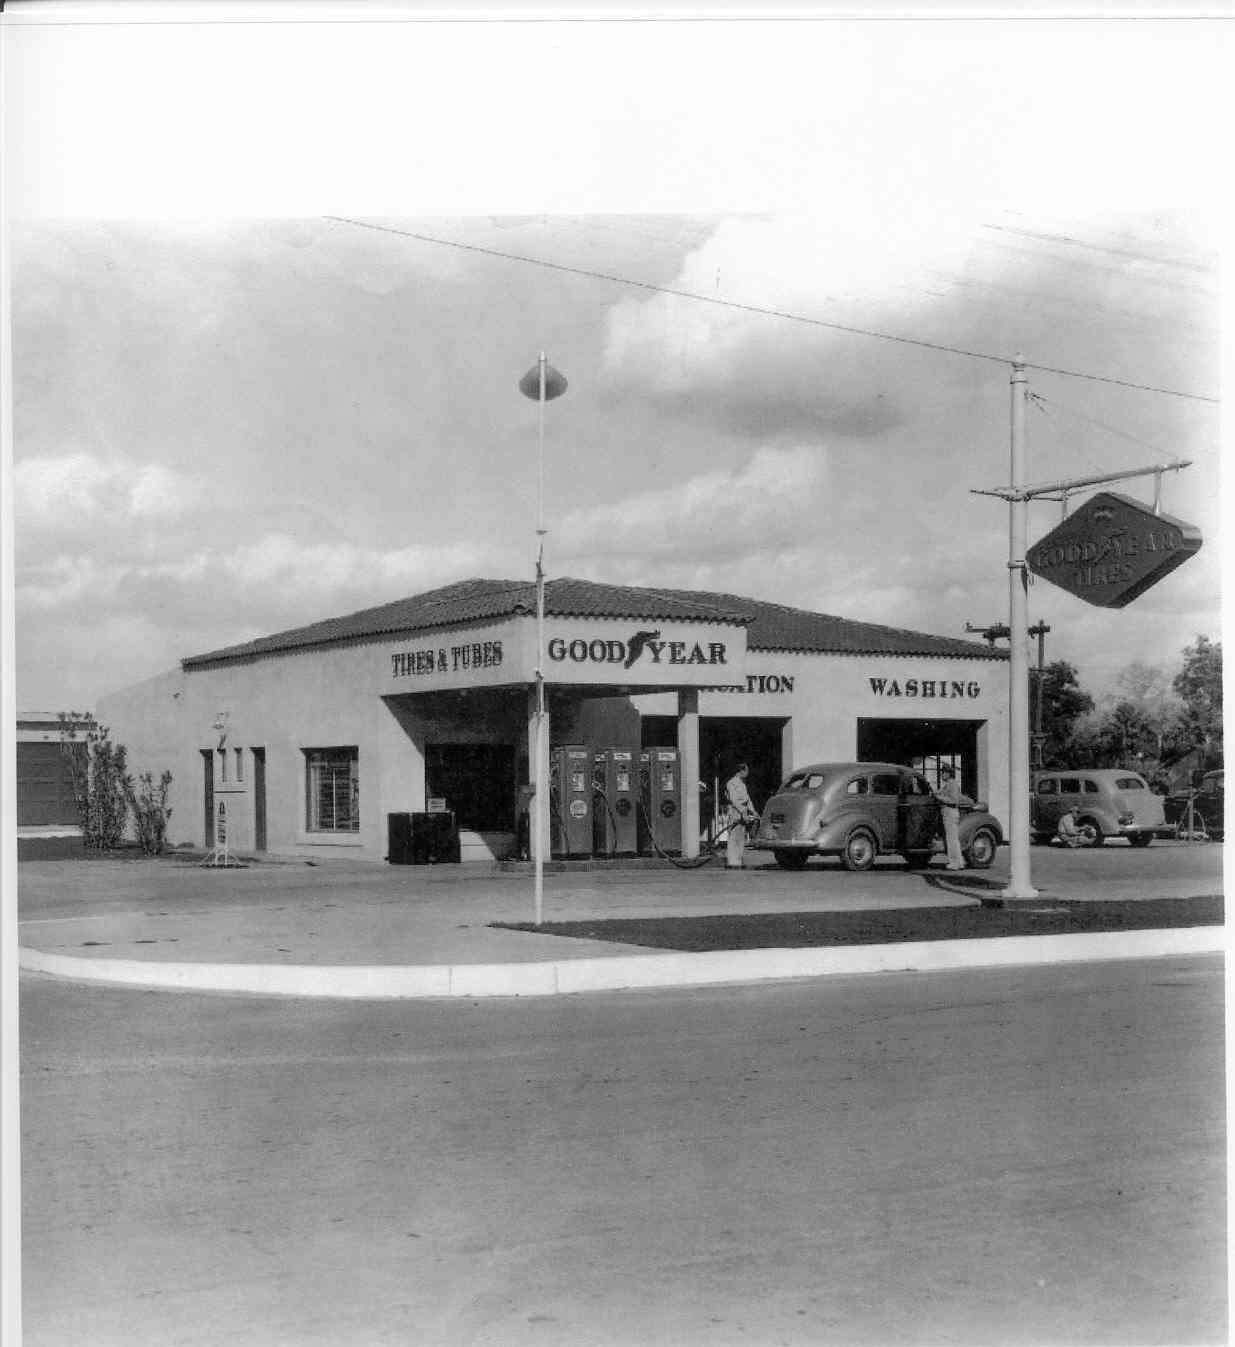 Goodyear Service Station